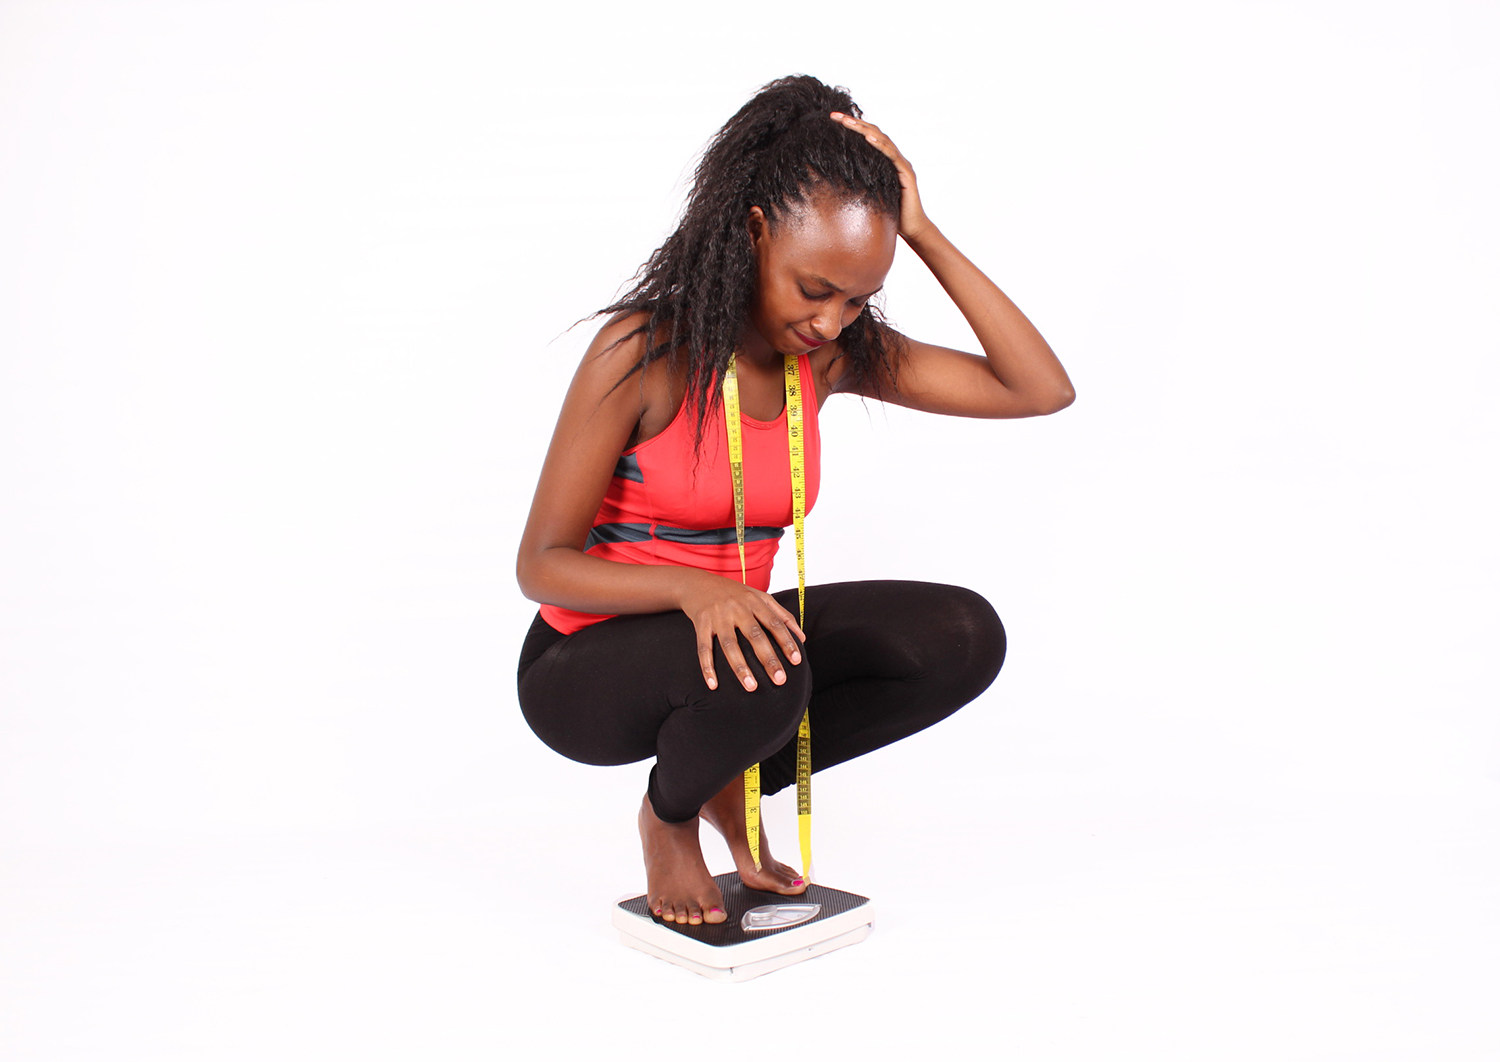 Frustrated woman with tape measure squatting on weigh scale